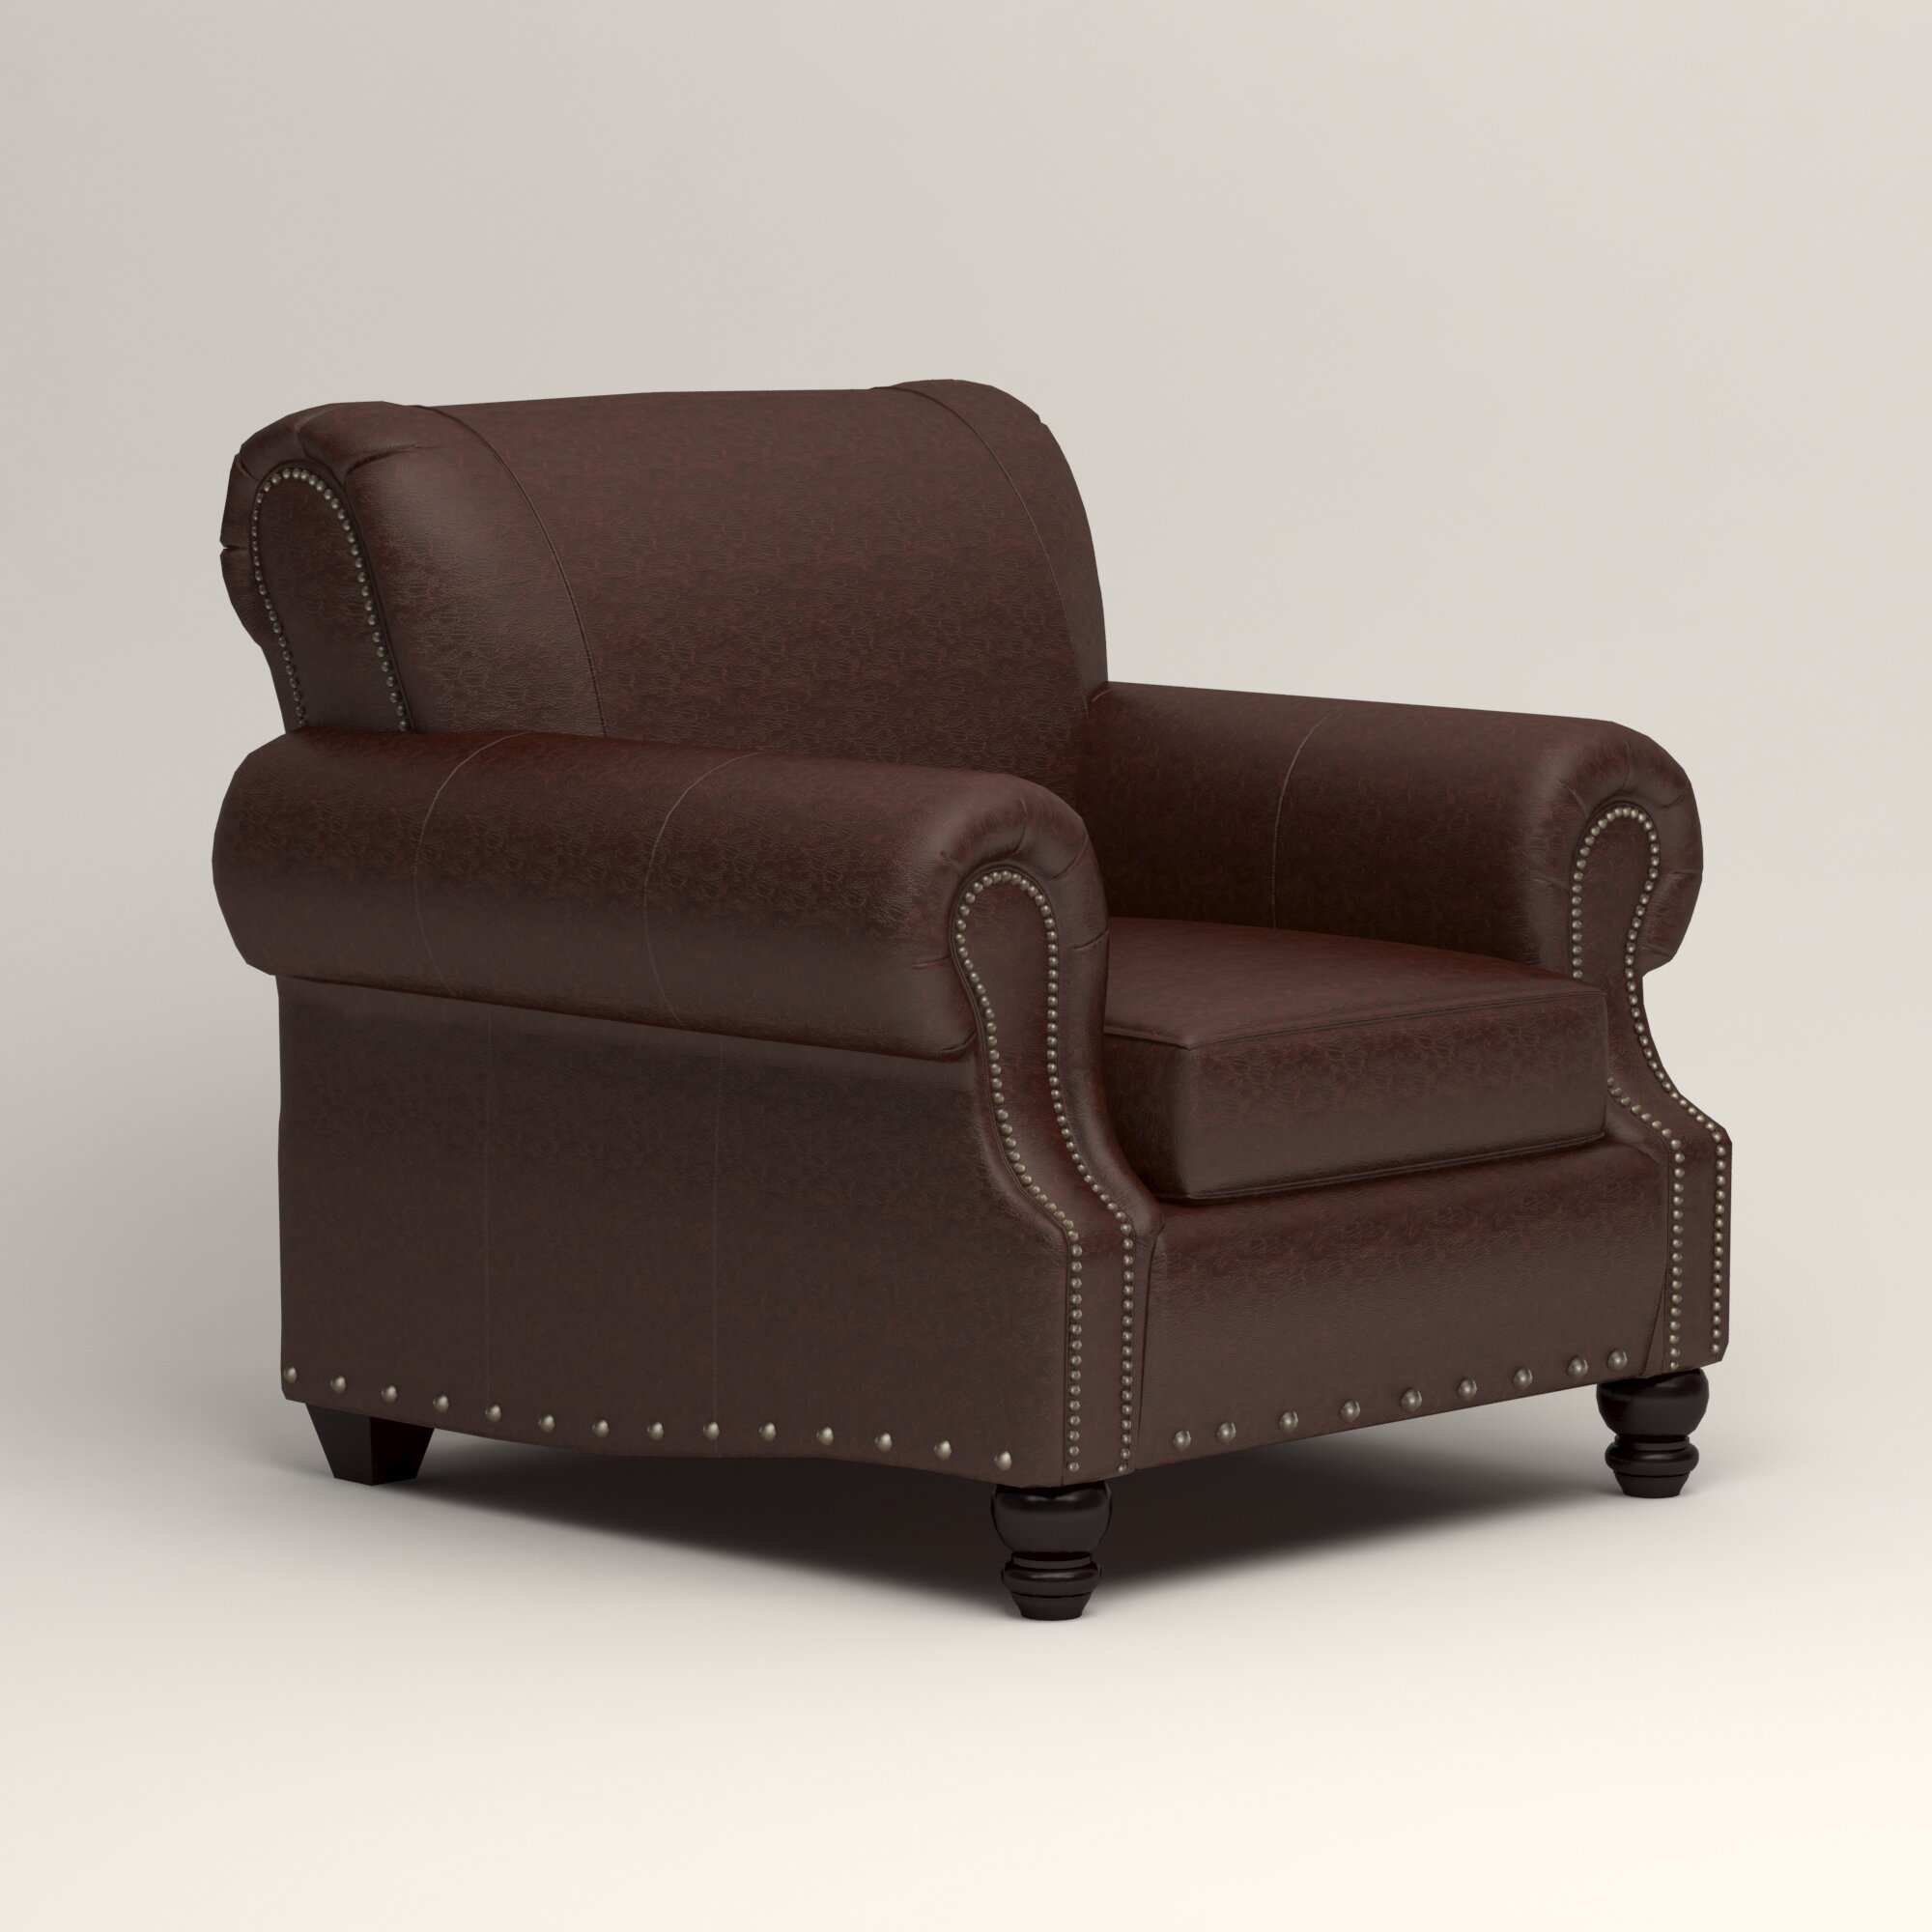 Birch Lane Landry Leather Club Chair Reviews – Leather Recliner Club Chairs